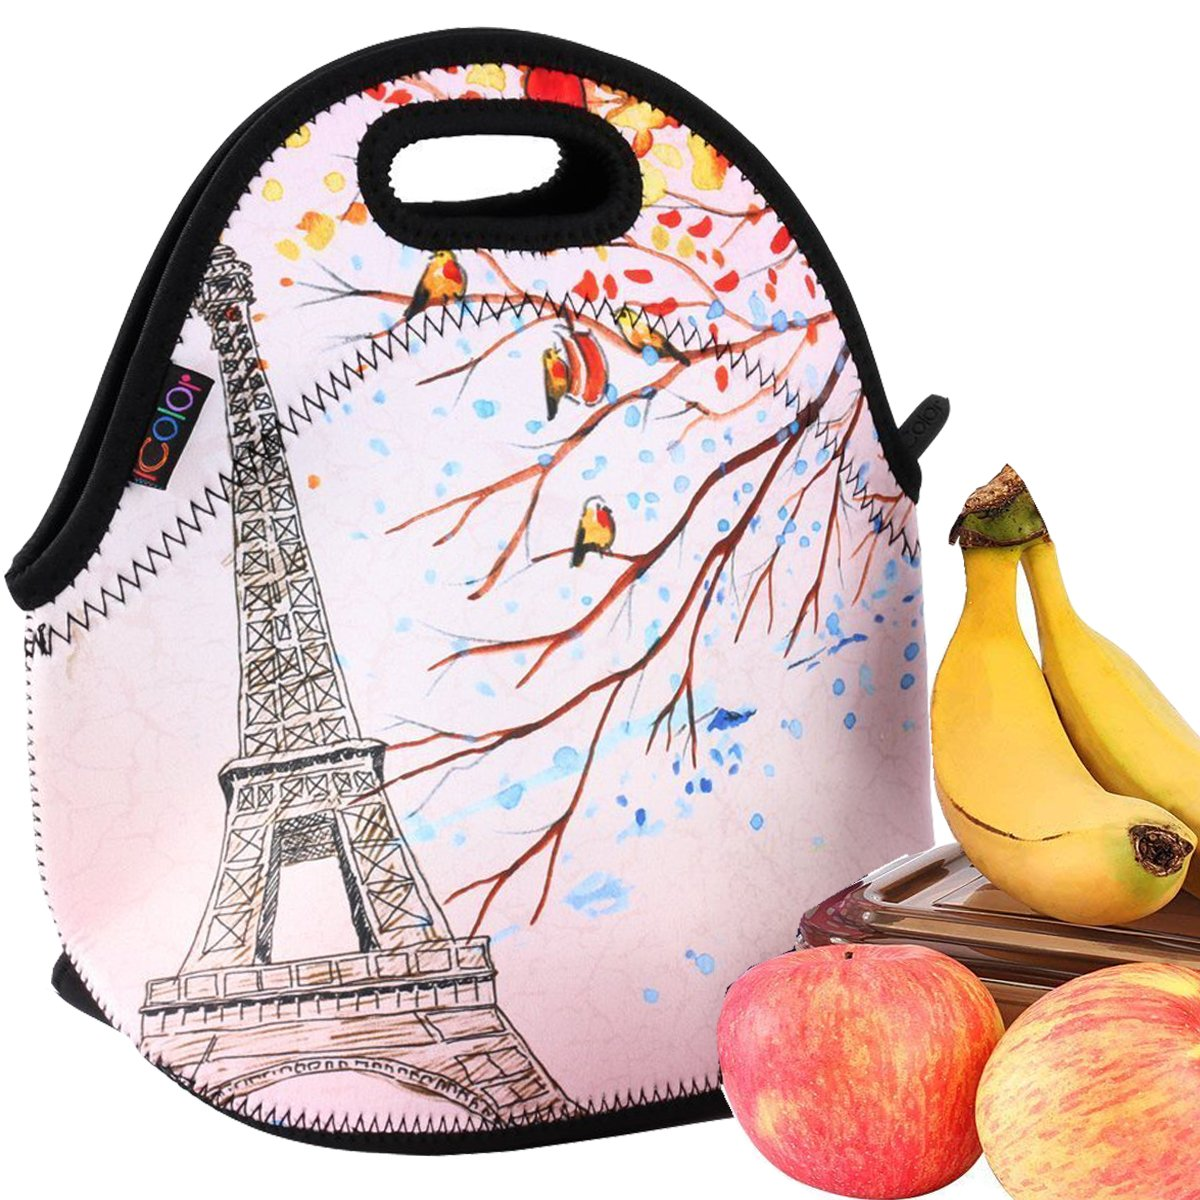 iColor Effiel Tower Insulated Neoprene Fashion Lunch Picnic Container Bag Box Tote Outdoor Travel Cooler Waterproof Soft Bag lunchbox Handbag Case For Boys Girls School Office Work Hot YLB-141